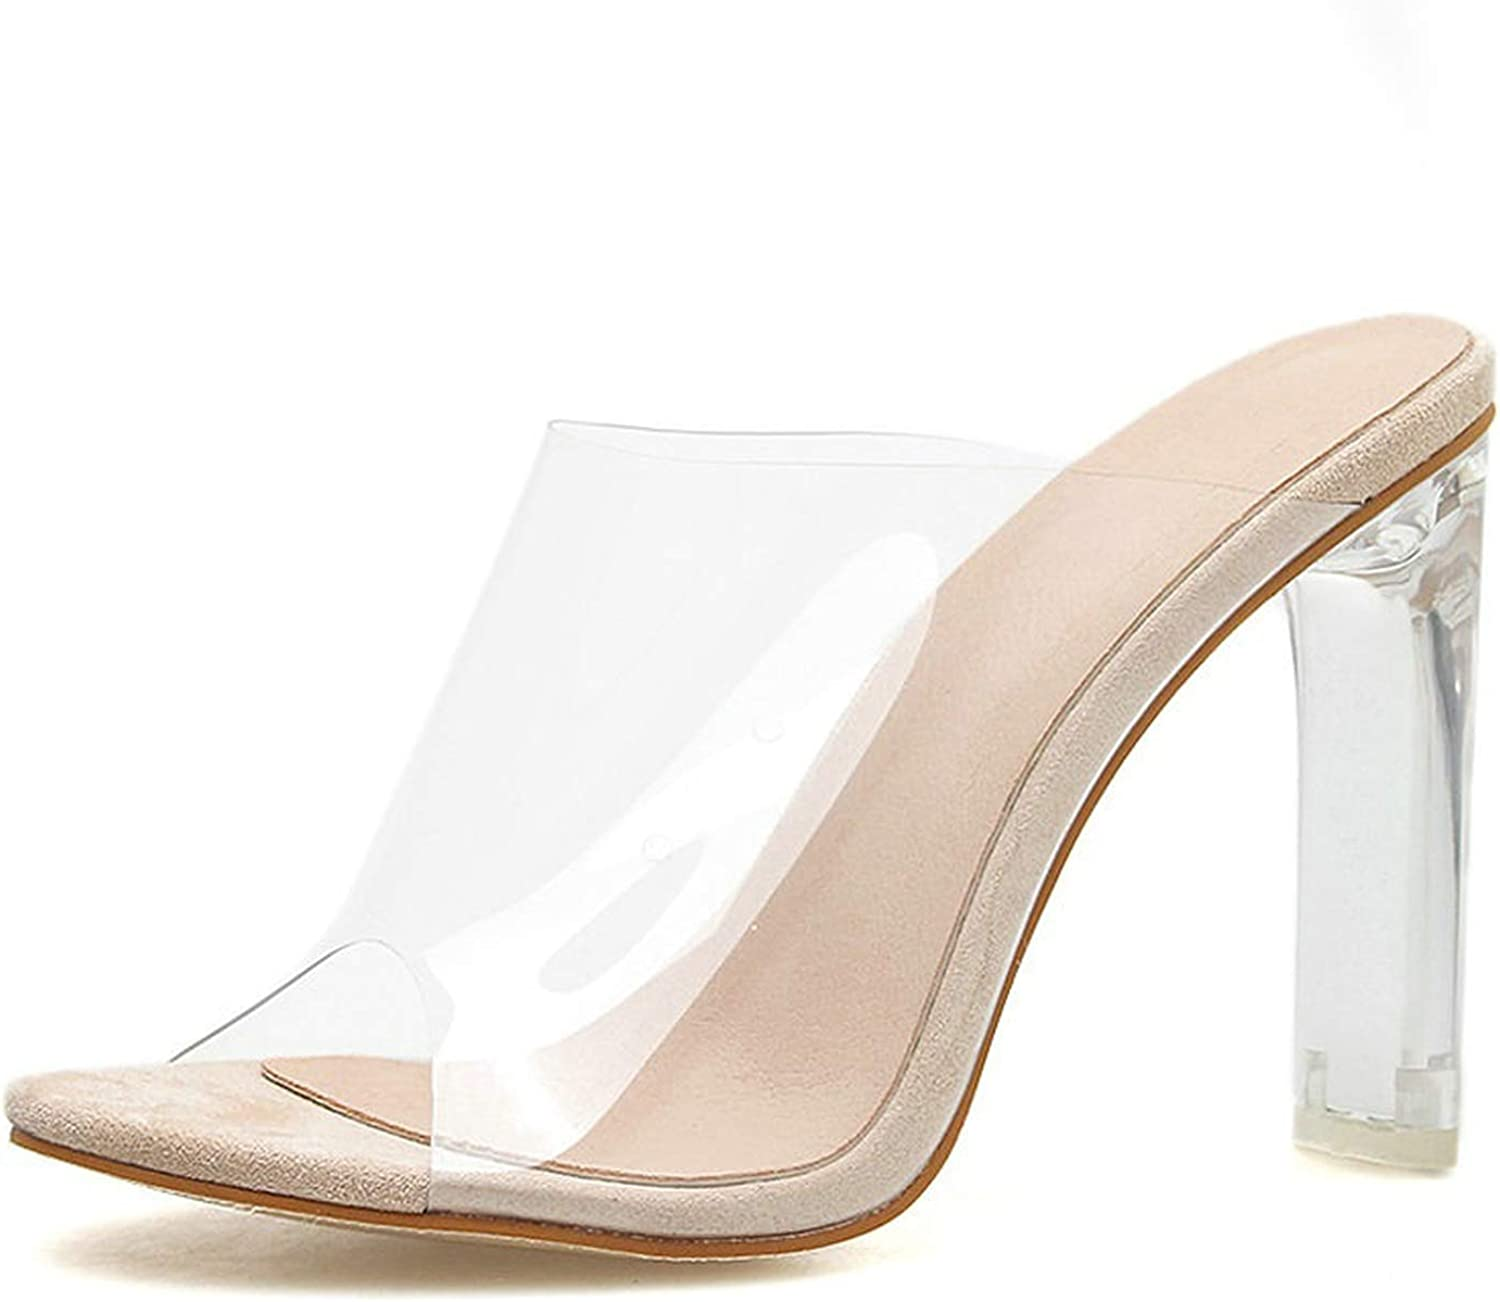 Summer Transparent PVC Women Sandals Open Toe Clear Crystal High Heels Slip On Sandals Dress Ladies shoes